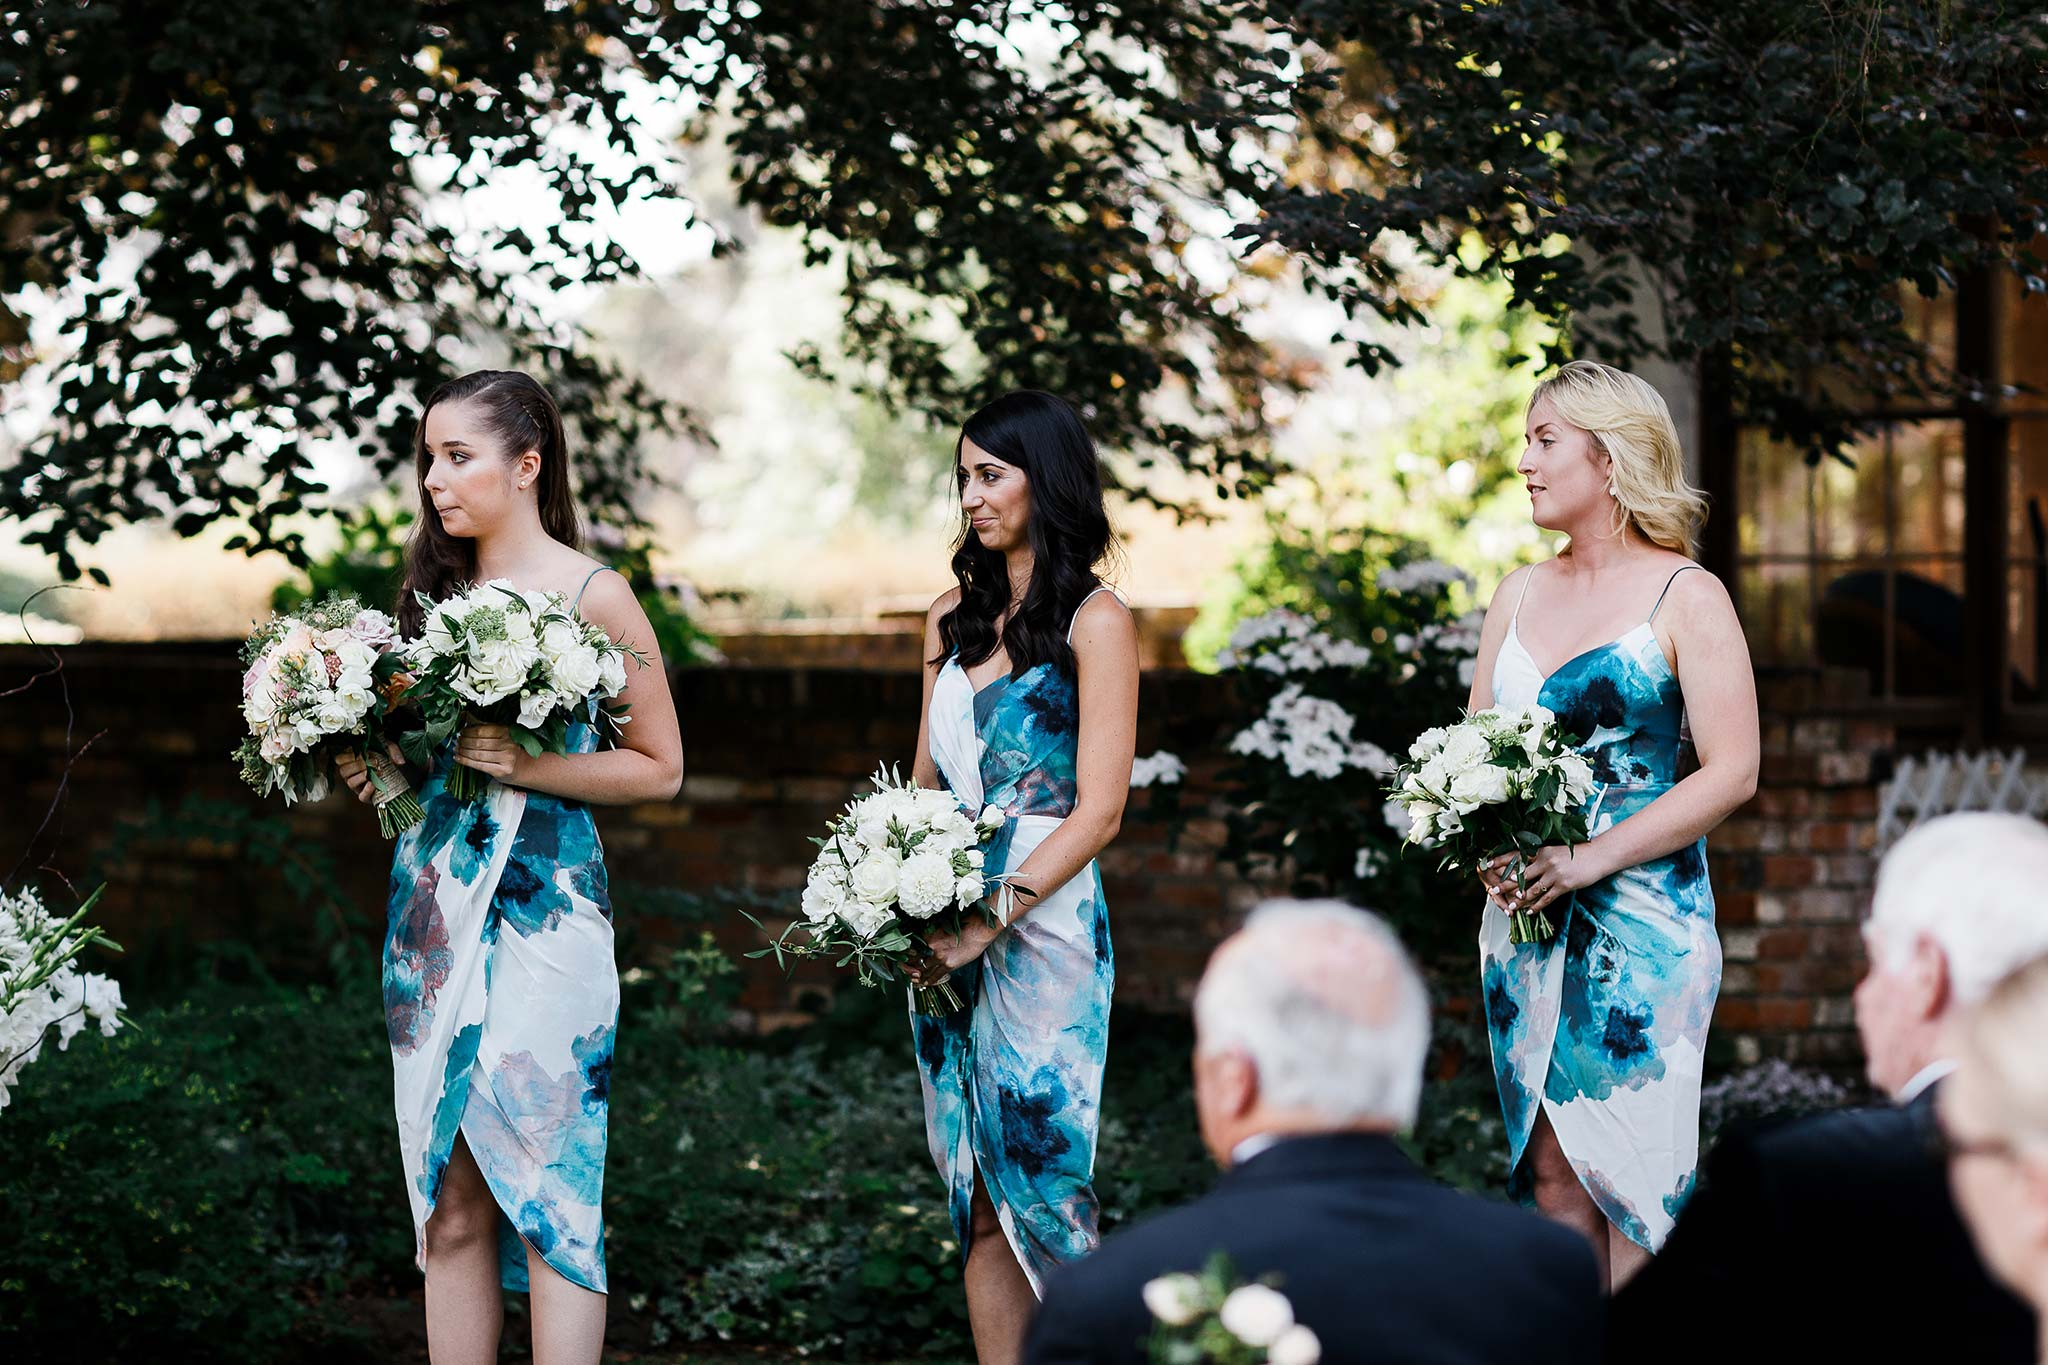 Launceston-Brickendon-barn-Wedding-Photographer-ceremony-bridesmaids